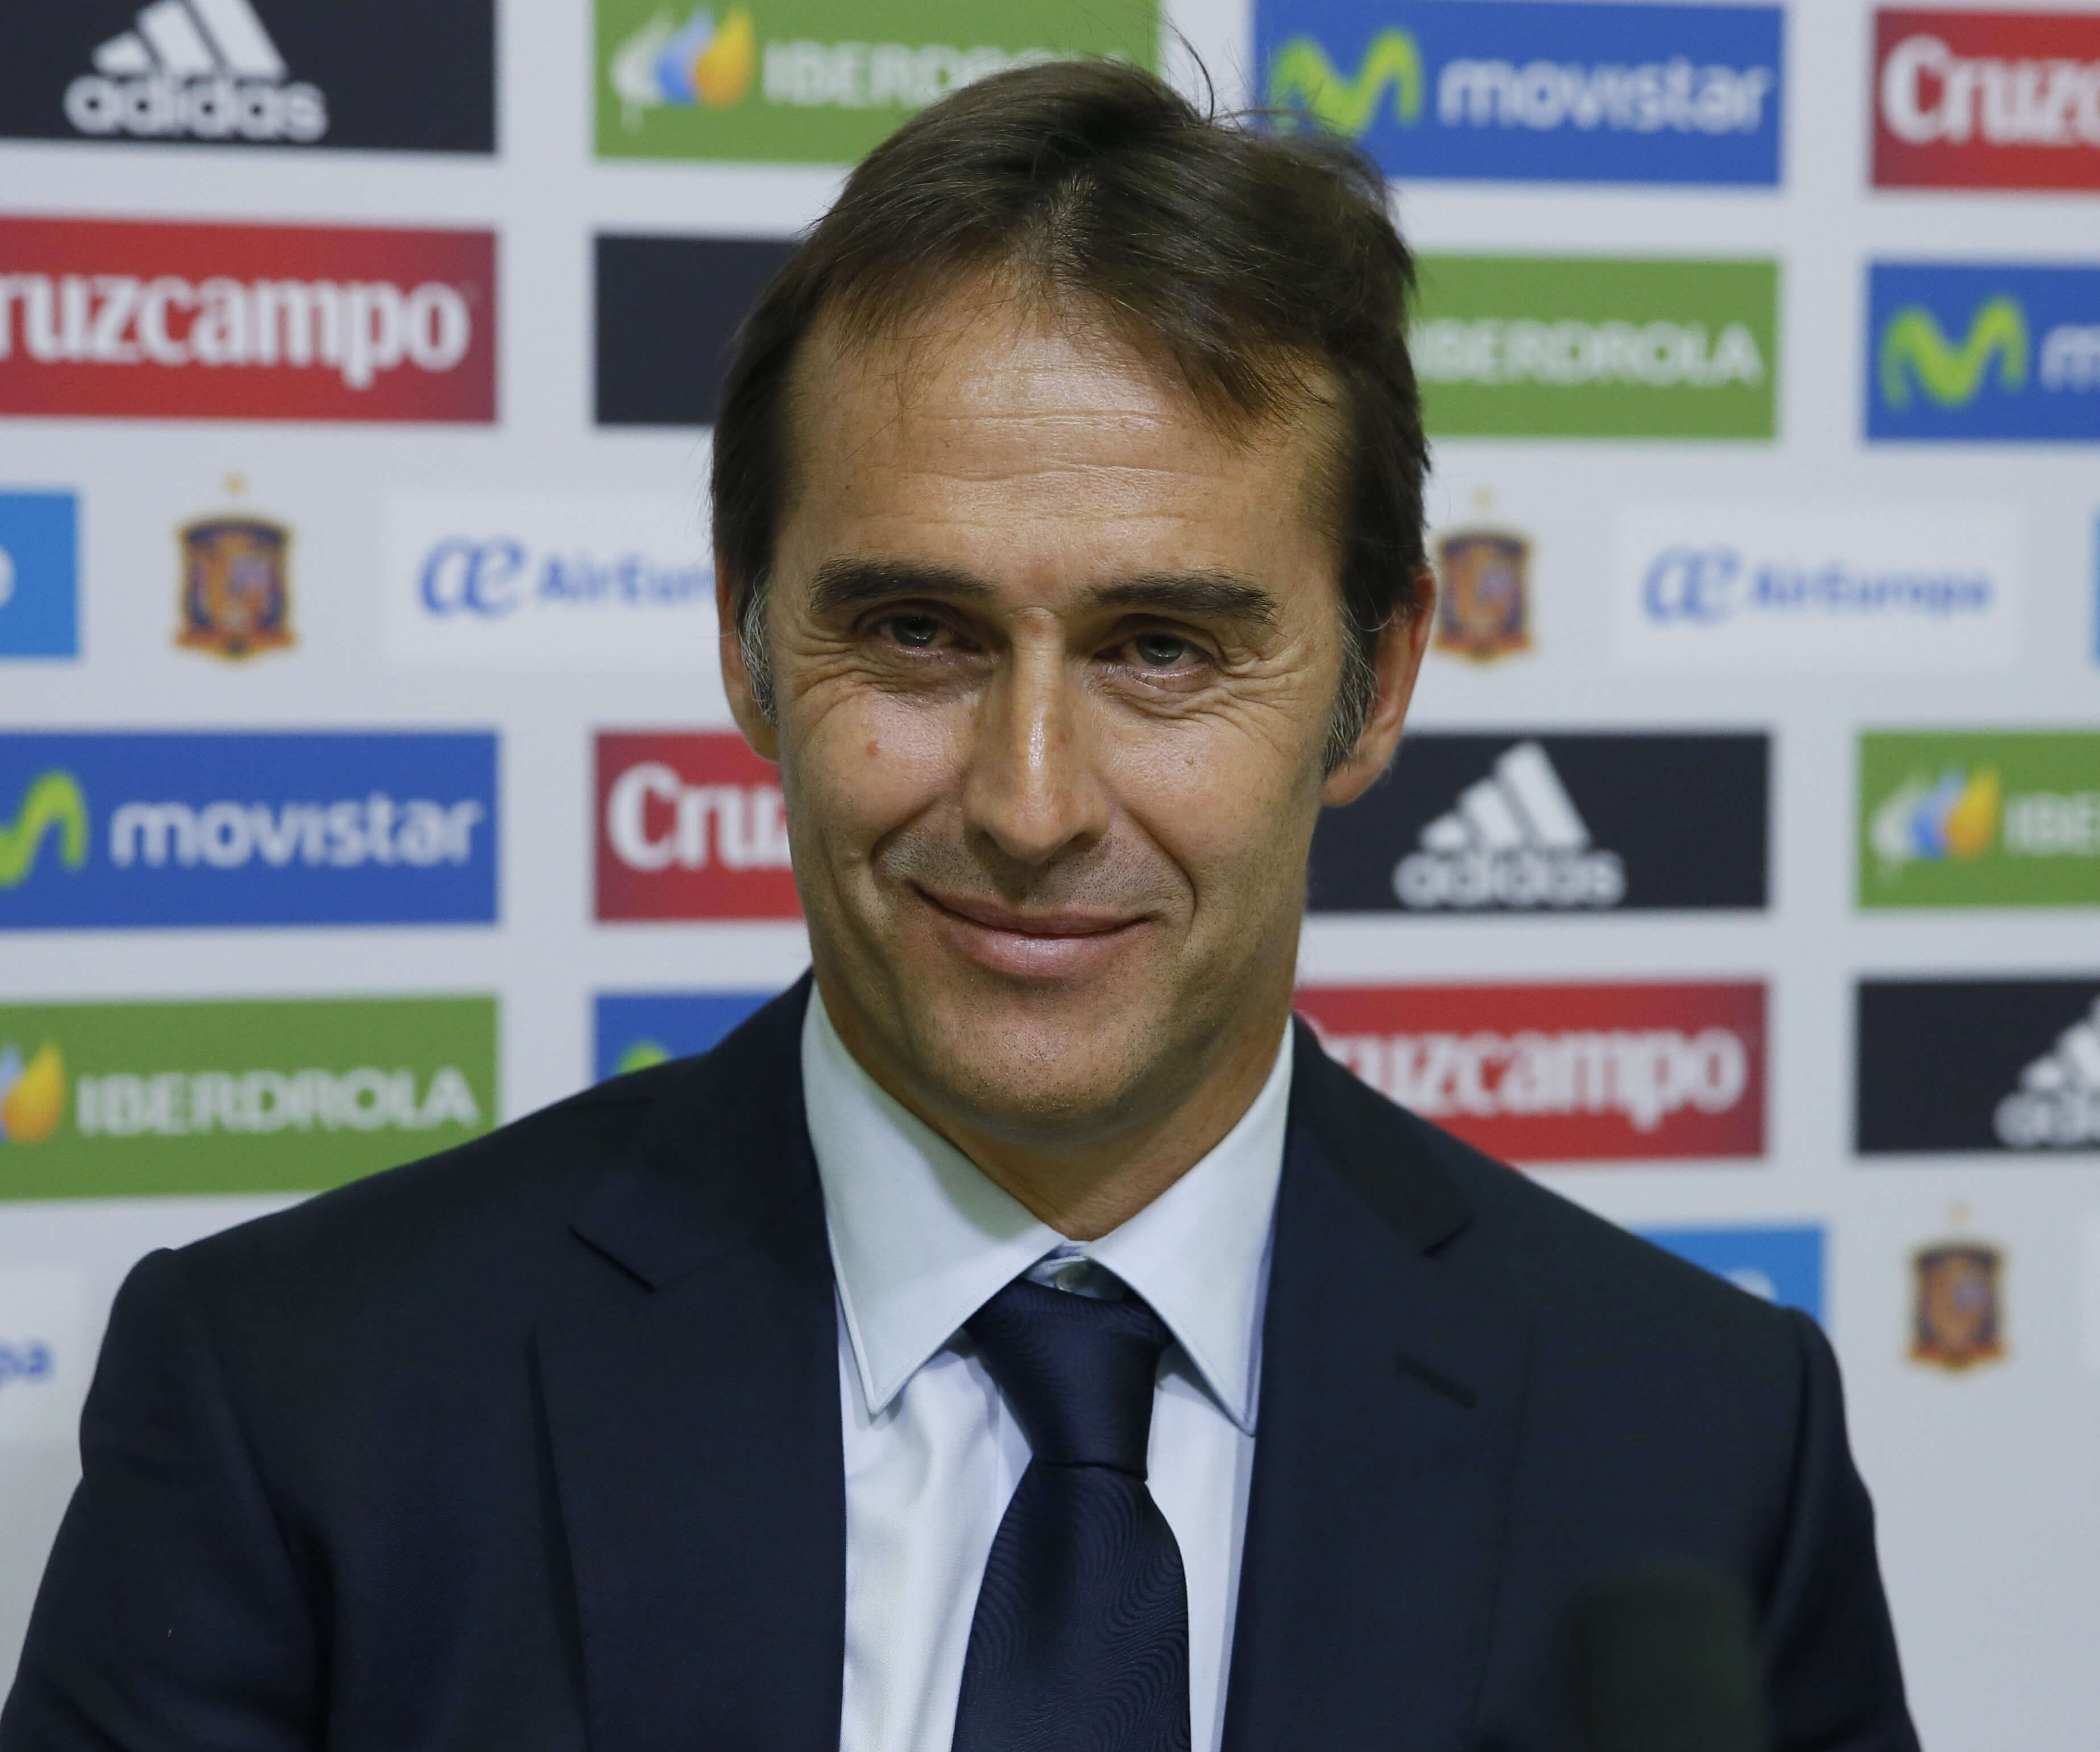 Spain coach Lopetegui to take charge of Real Madrid